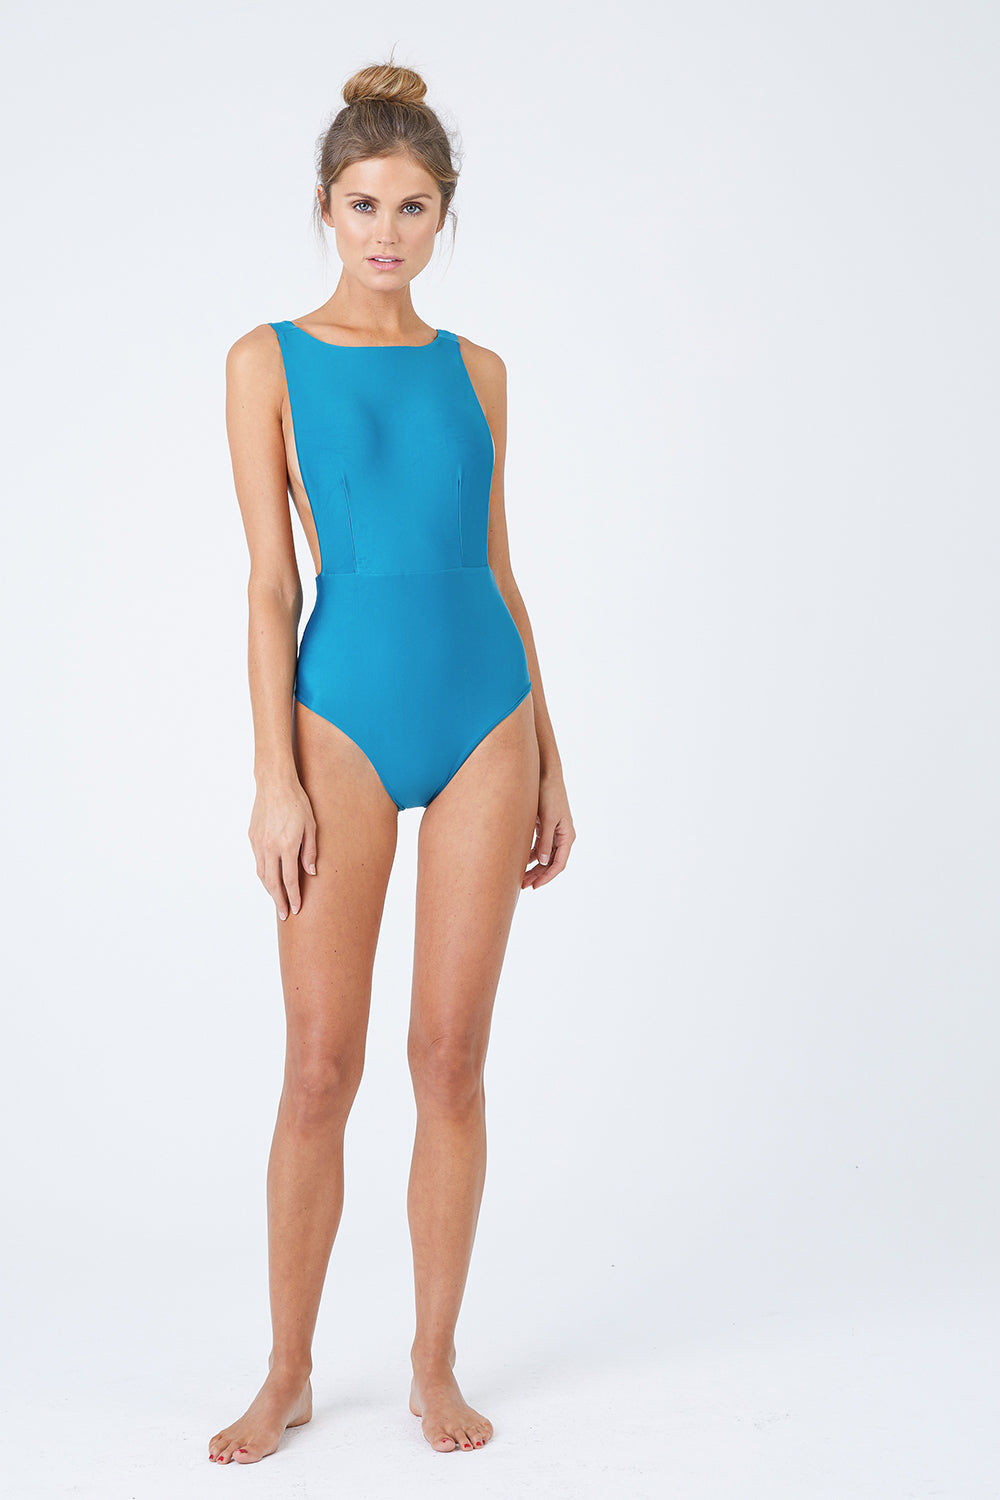 HAIGHT Side Slit Maillot One Piece Swimsuit - Blue Topaz One Piece | Blue Topaz| Haight Side Slit Maillot One Piece Swimsuit - Blue Topaz Features: Crew Neck One Piece Deep sides Detail Scoop Back Thick Back Straps Low Cut Leg Moderate Coverage  Front View